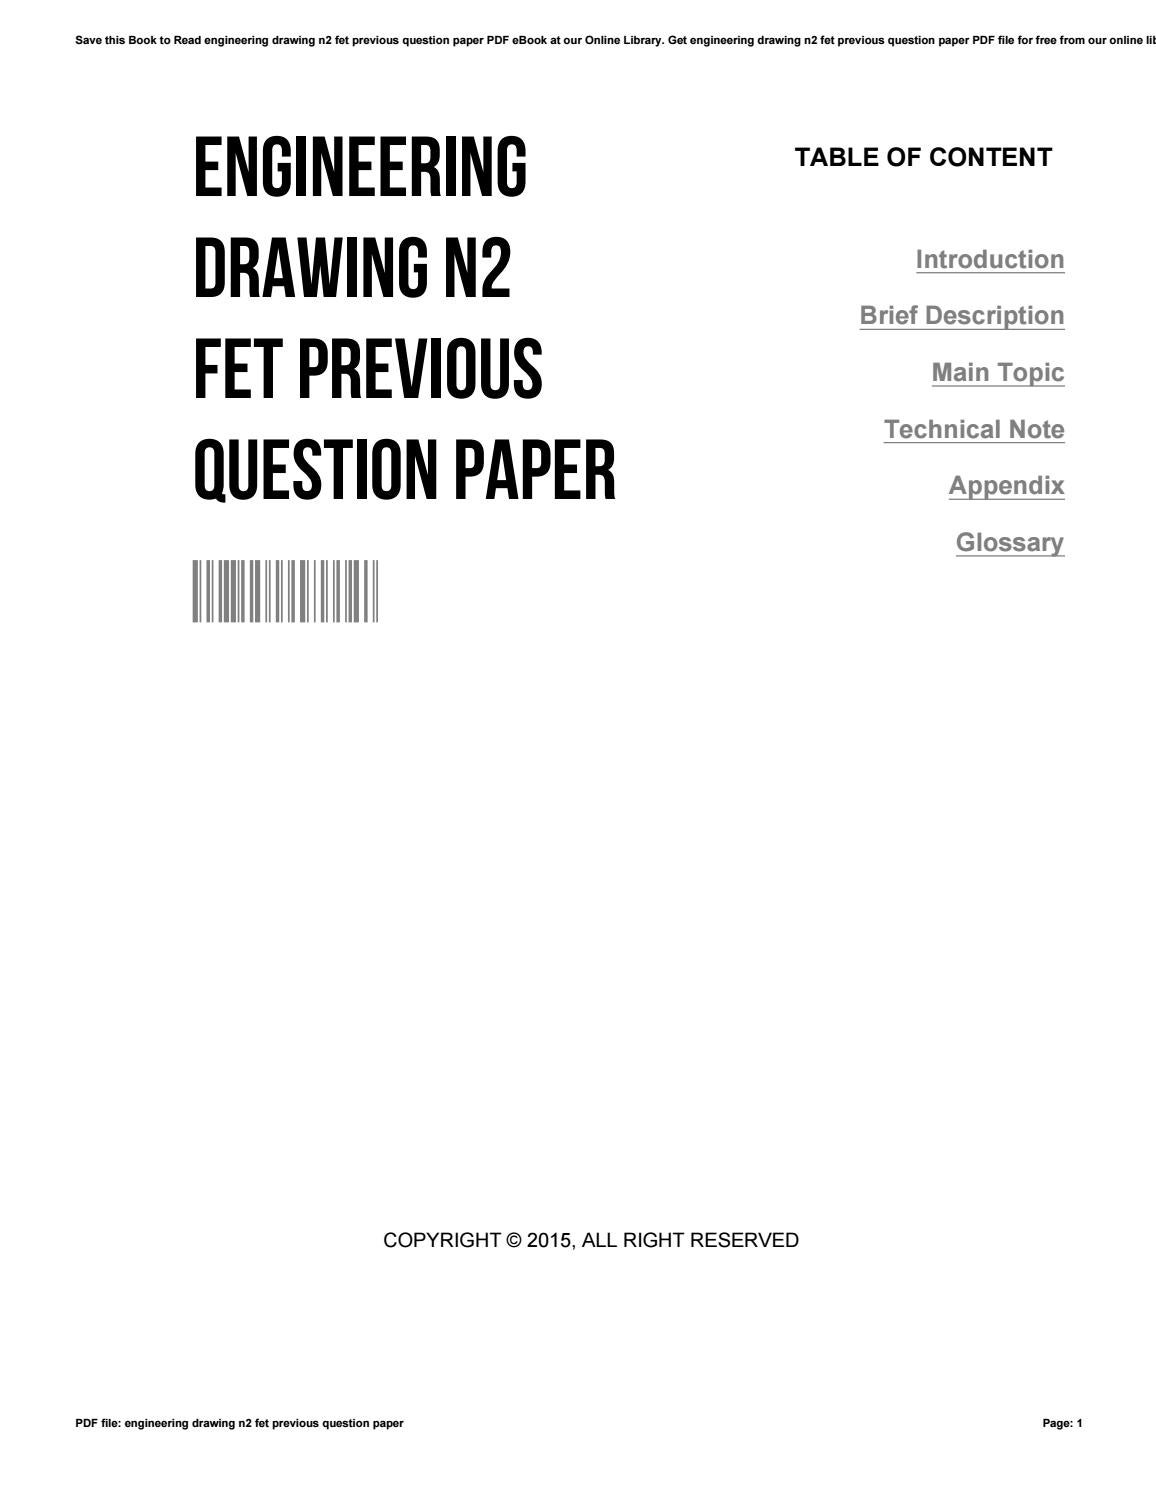 Engineering drawing n2 fet previous question paper by